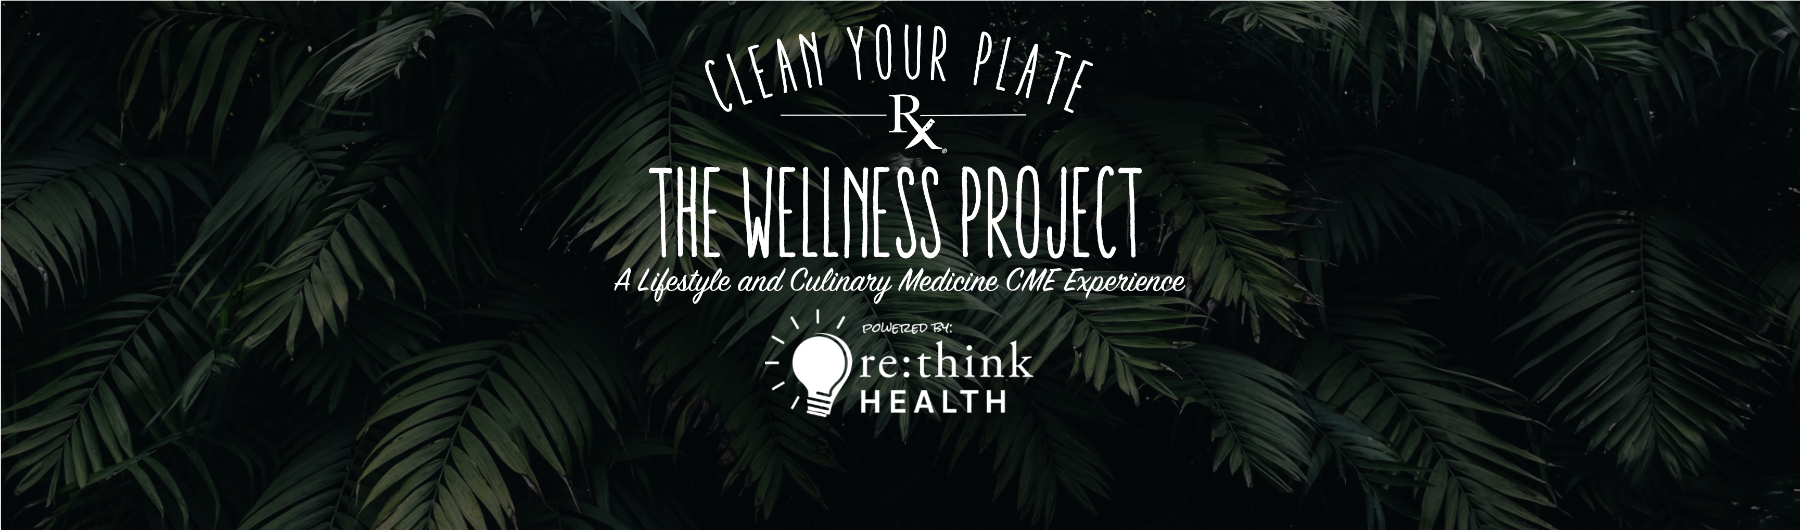 The Wellness Project: A Lifestyle and Culinary Medicine CME Experience!